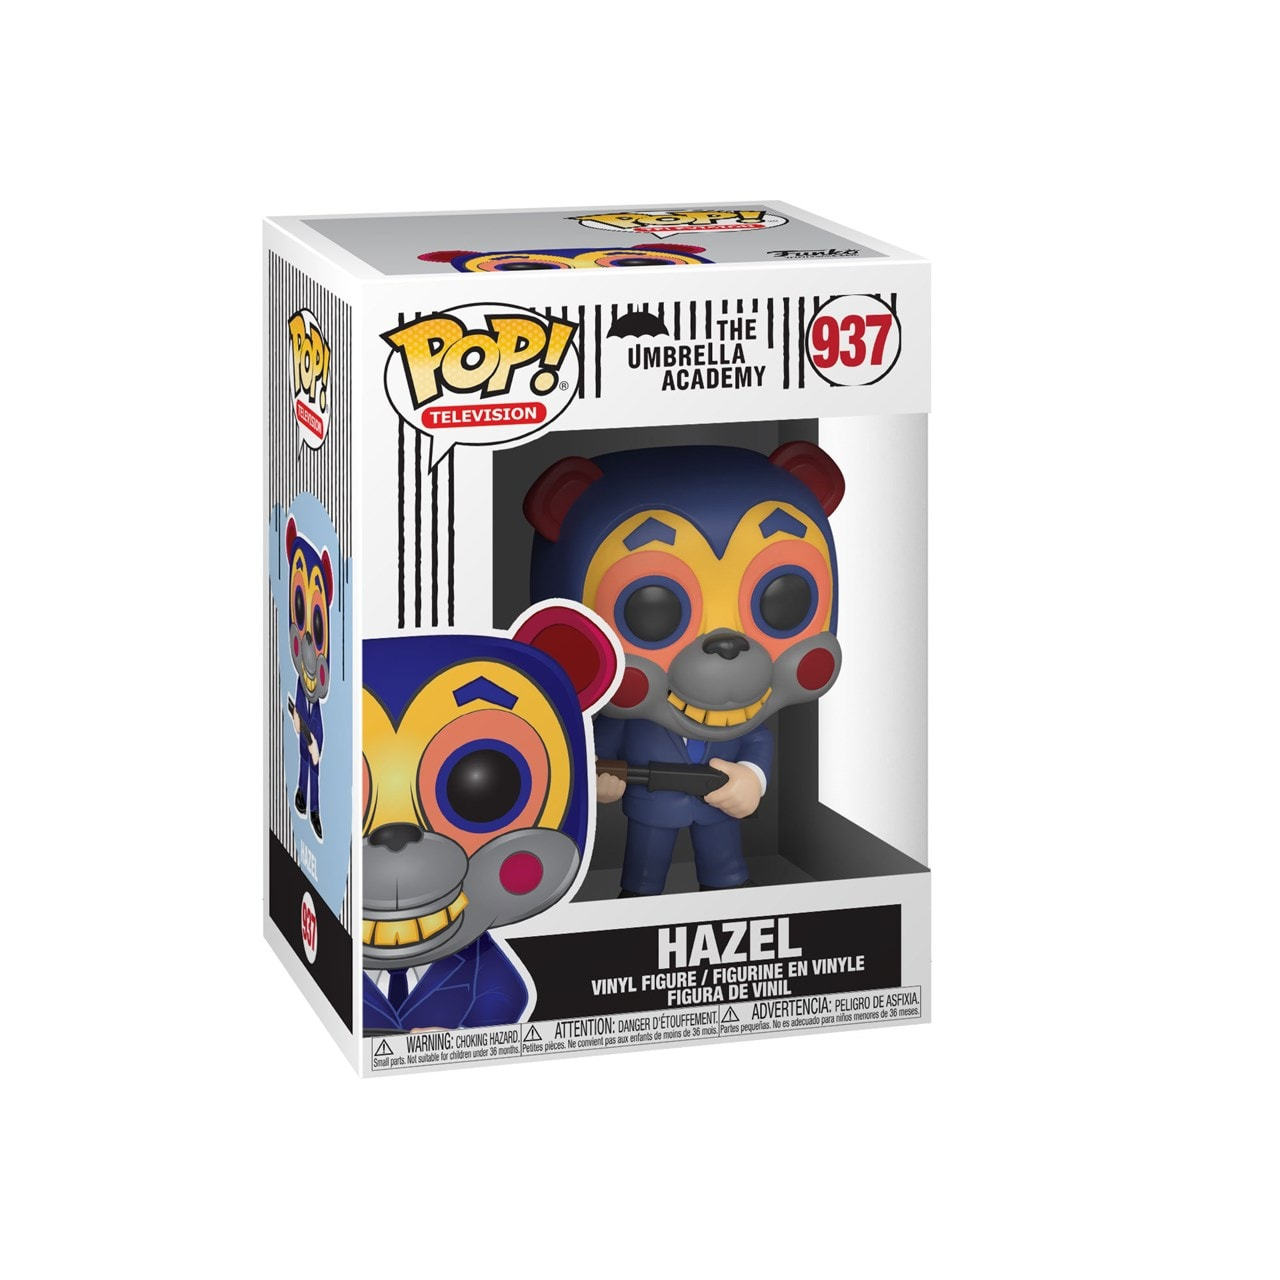 Pop Vinyl: Hazel With Mask (937): The Umbrella Academy - 2